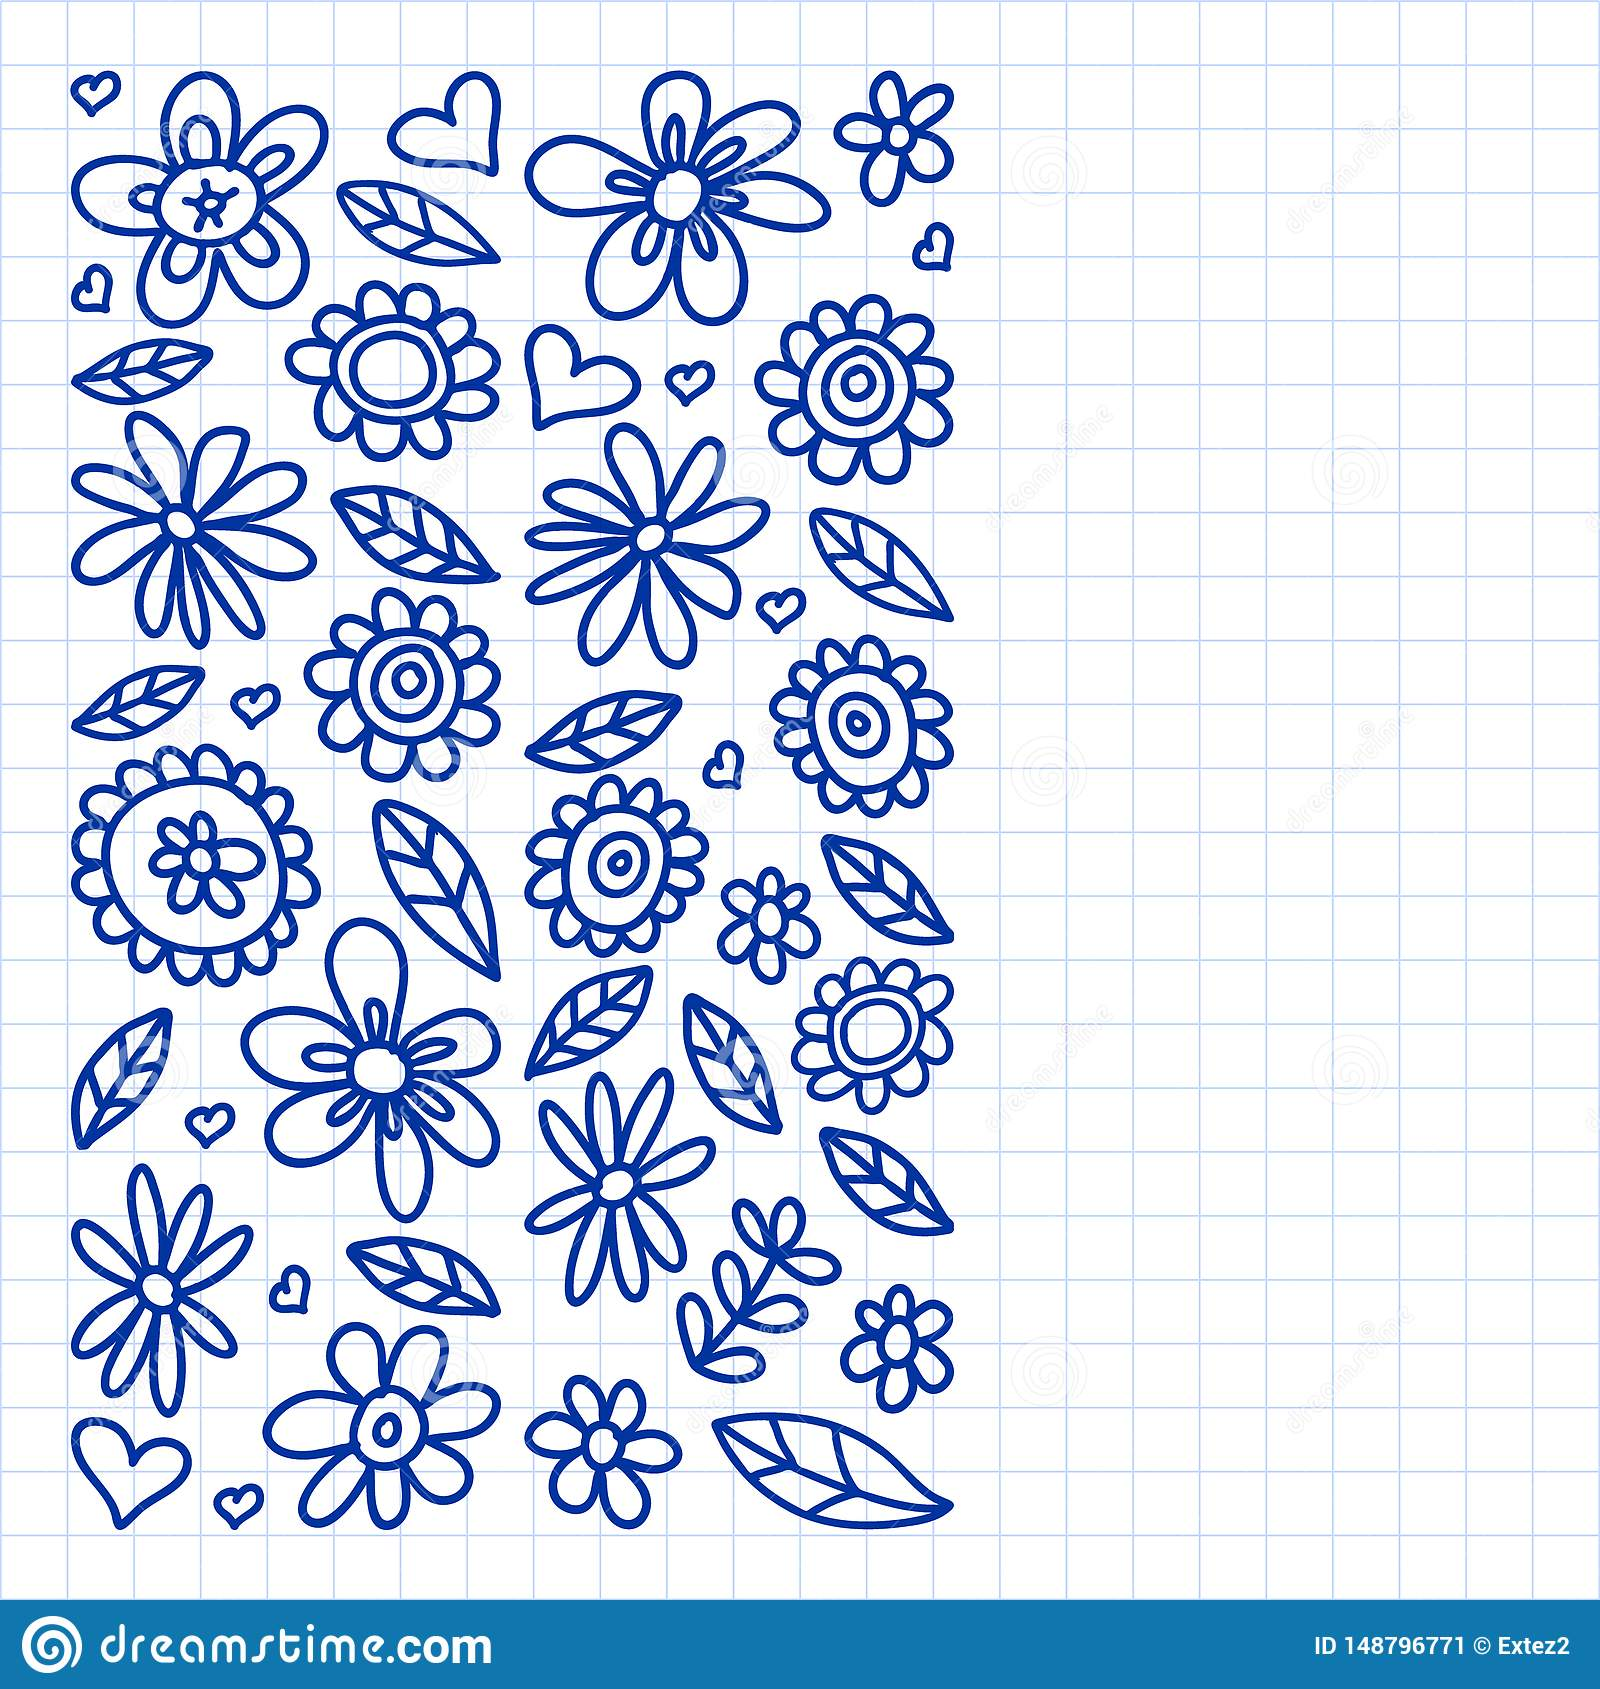 Vector set of child drawing flowers icons in doodle style. Painted, drawn with a pen, on a sheet of checkered paper on a white